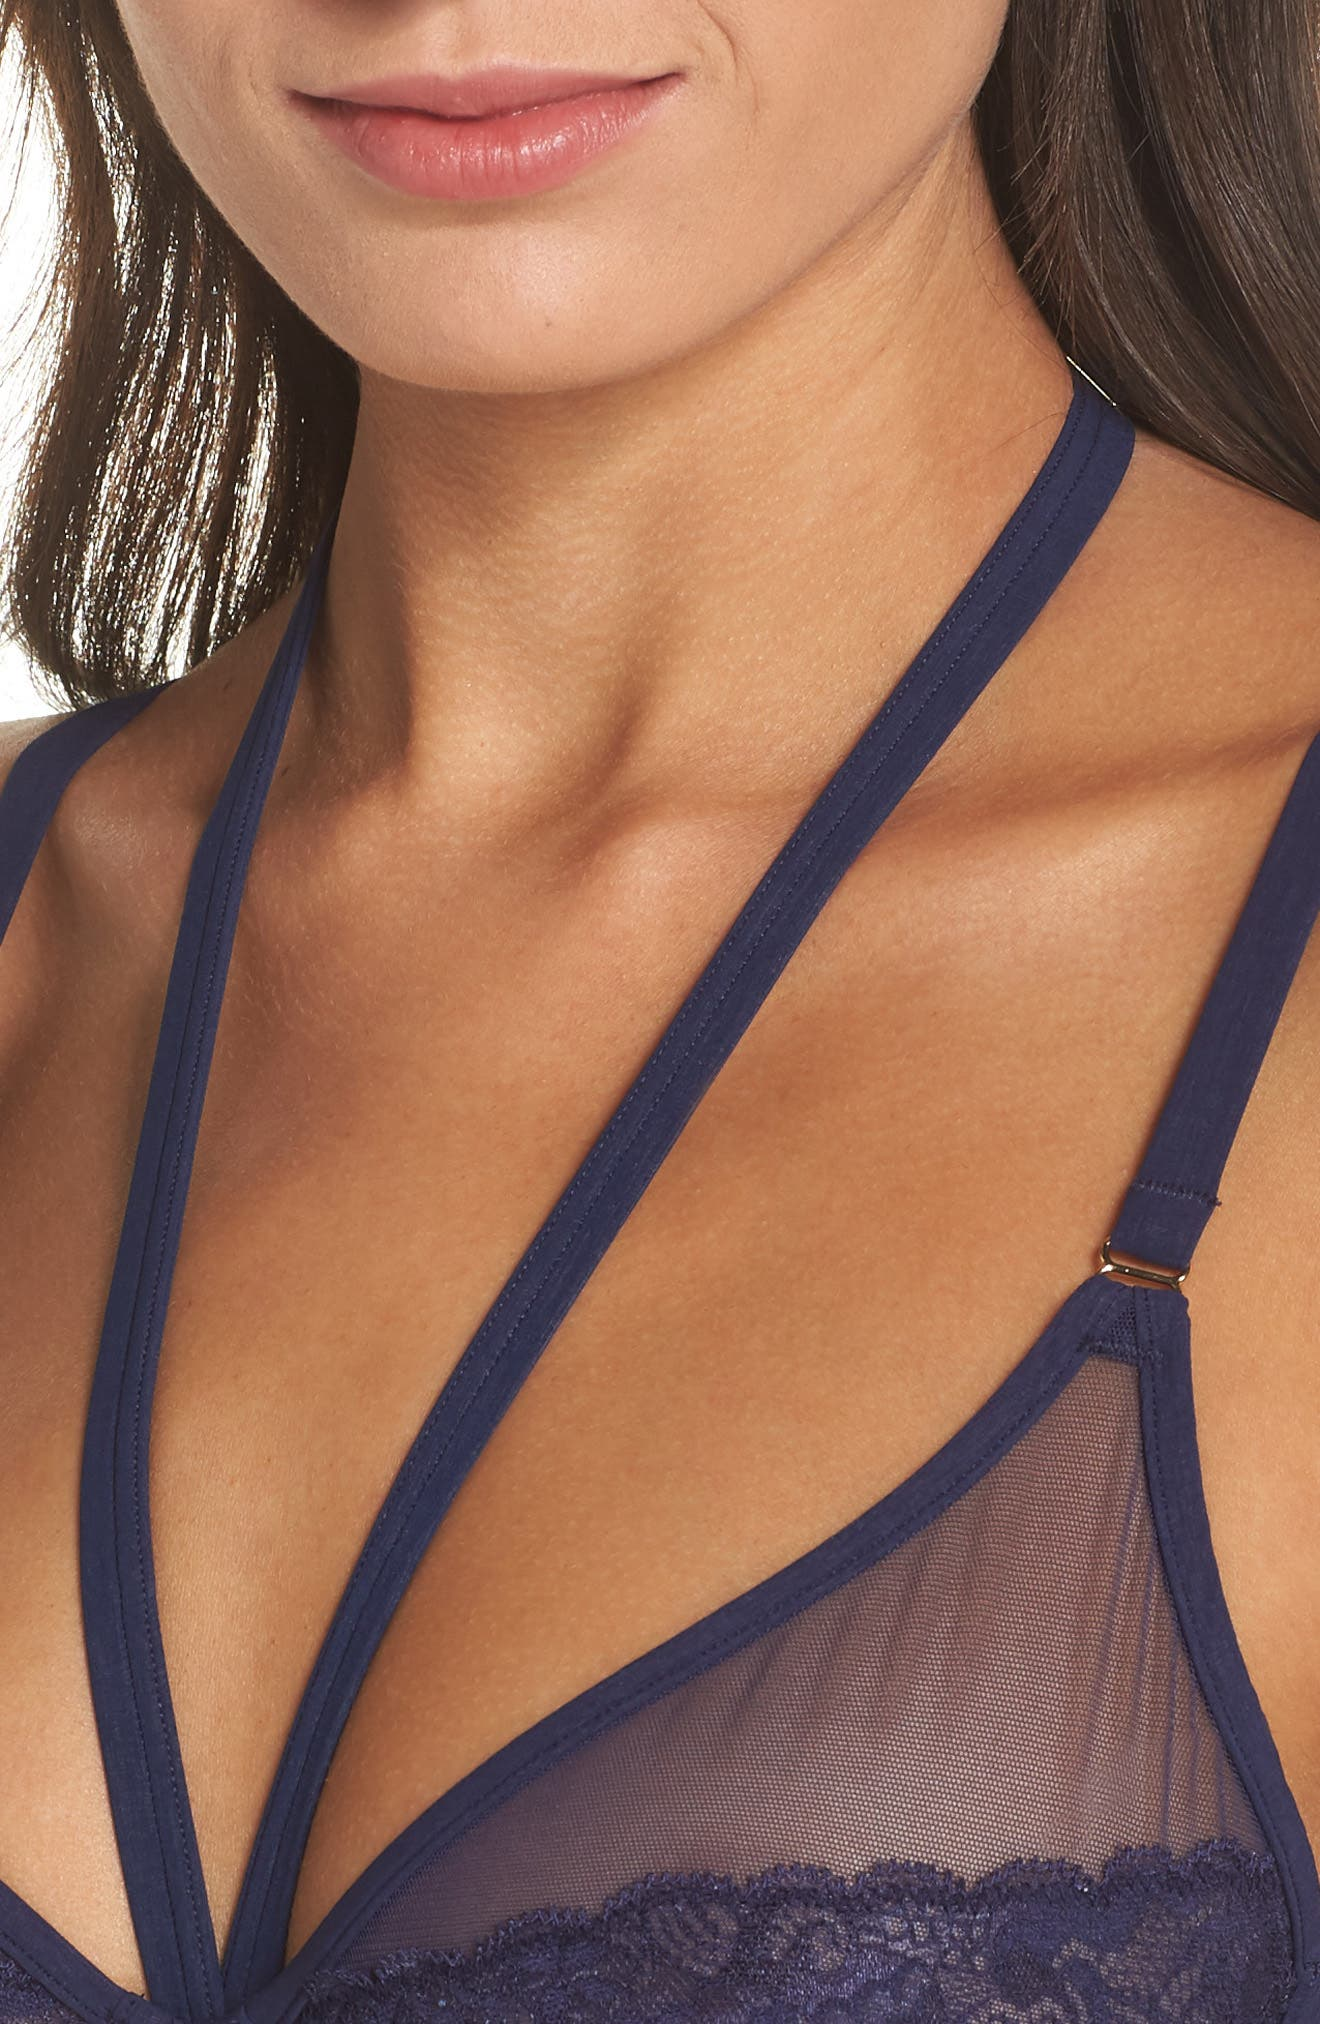 Rock Candy Underwire Bra,                             Alternate thumbnail 7, color,                             Navy